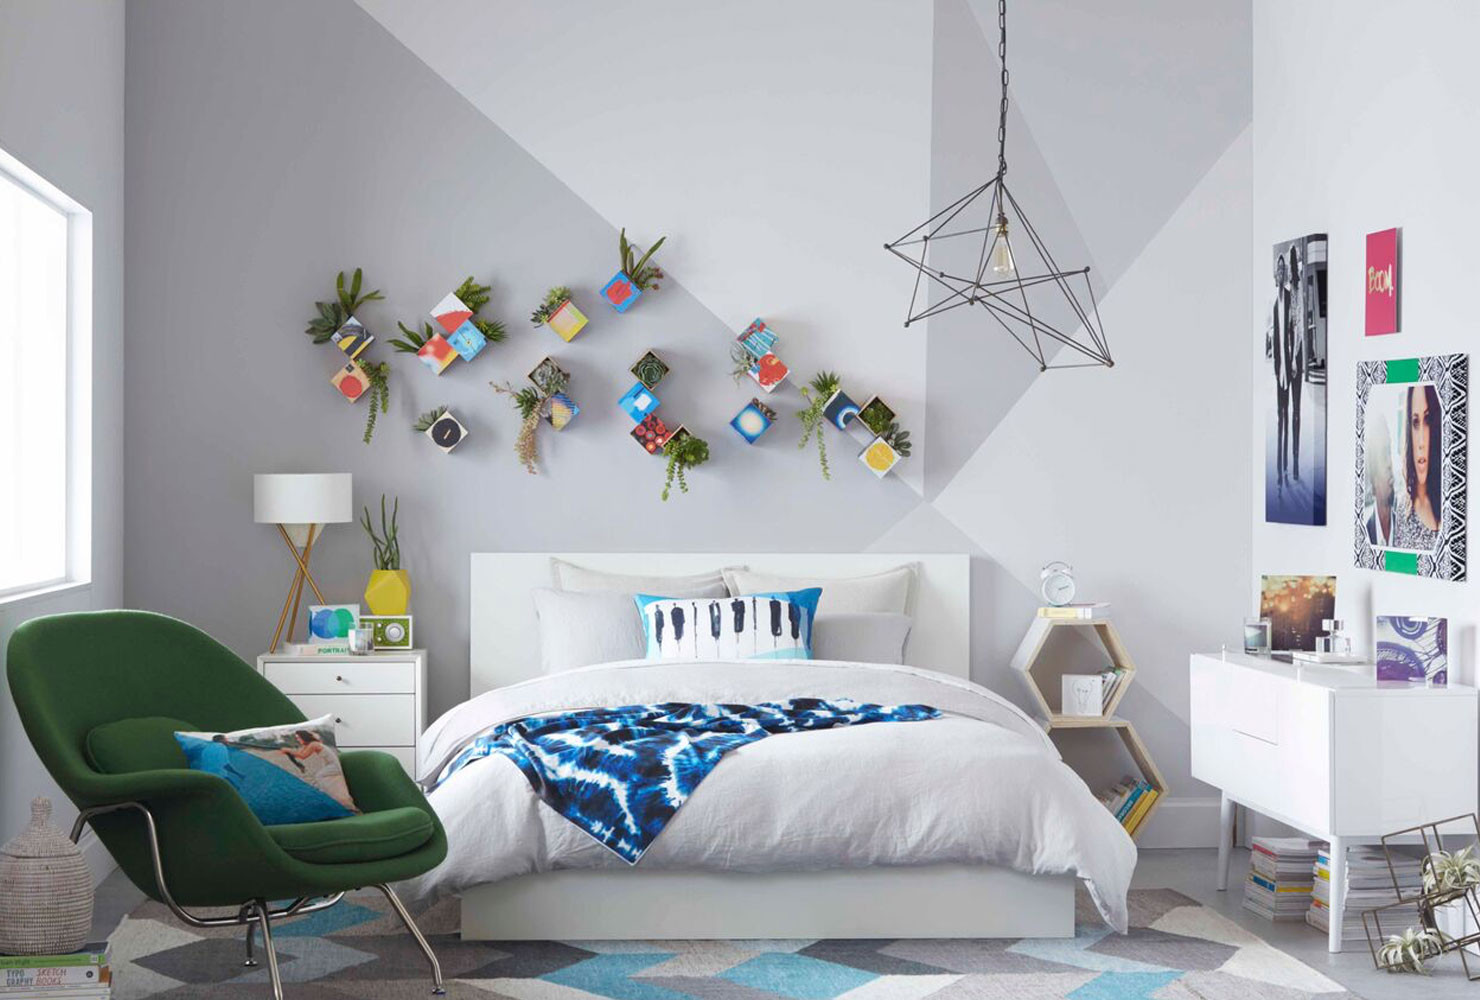 Best ideas about Diy Bedroom Decor . Save or Pin 24 DIY Bedroom Decor Ideas To Inspire You With Printables Now.